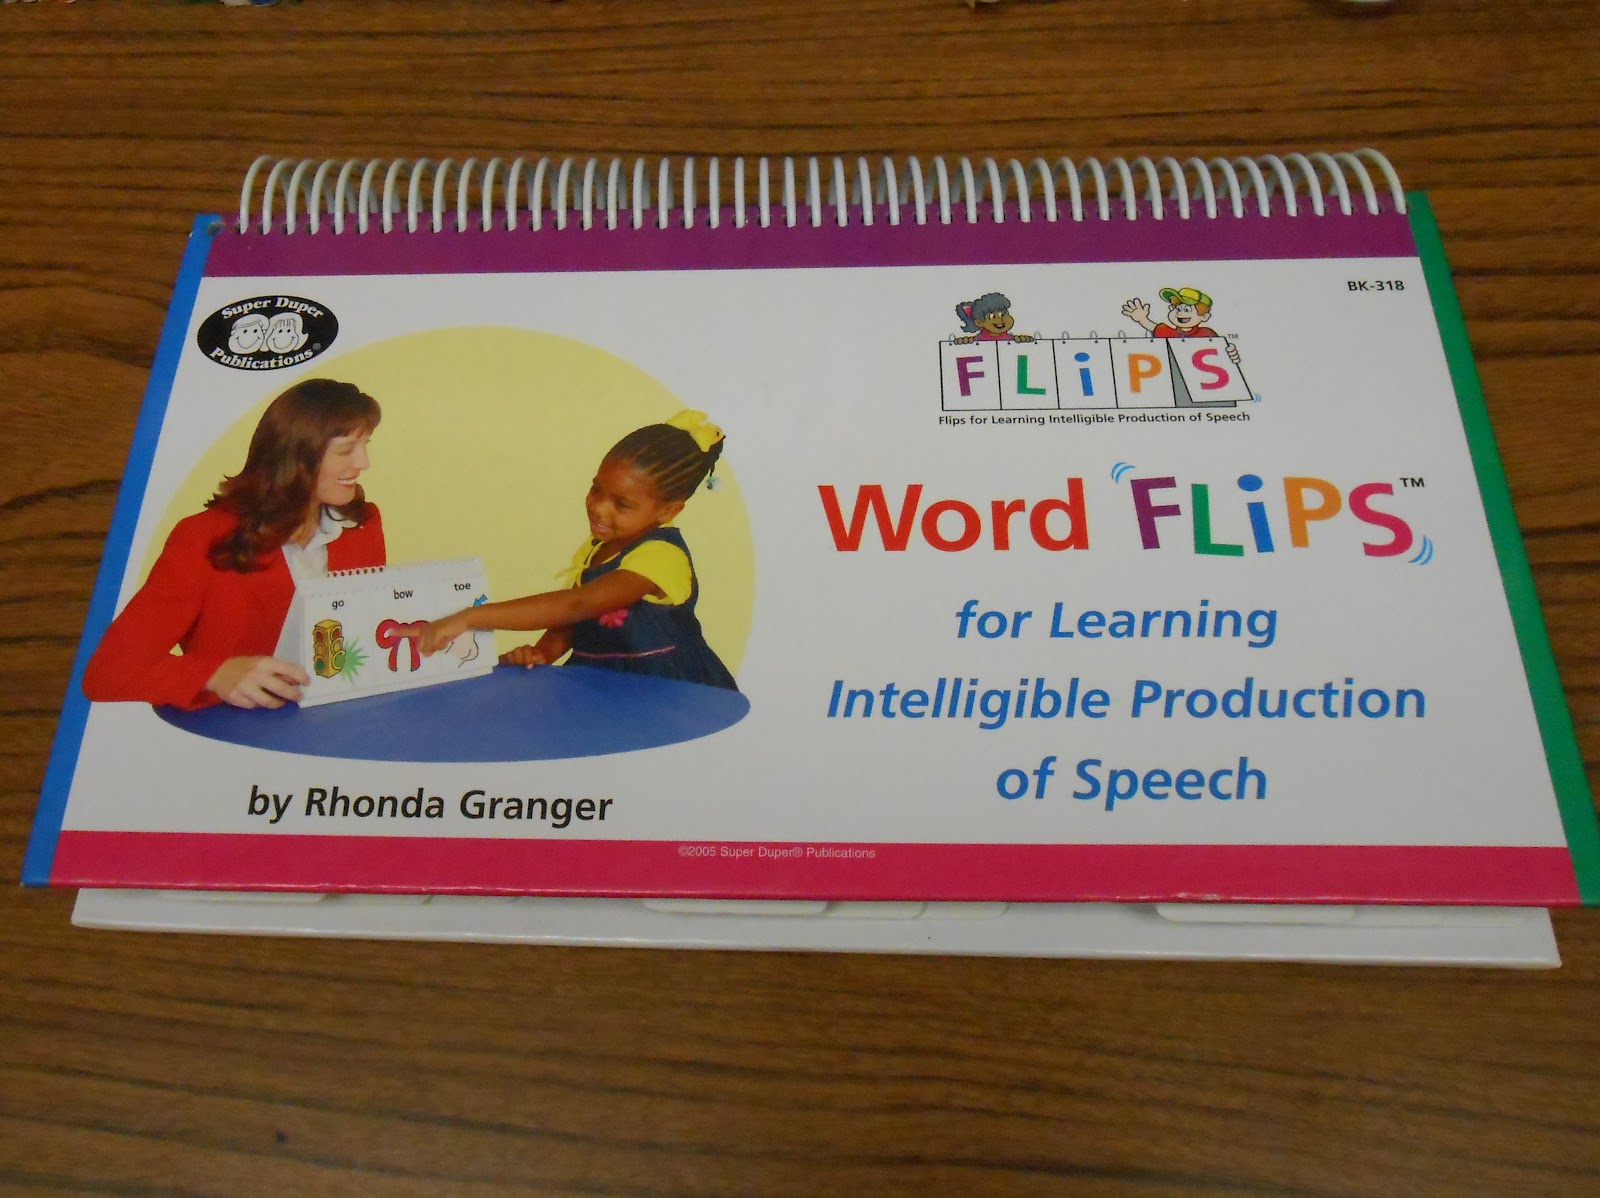 ... Word FLIPS (For Learning Intelligible Production of Speech) book from  Super Duper, Inc. I use it for 3-5 minutes at the start of my sessions.